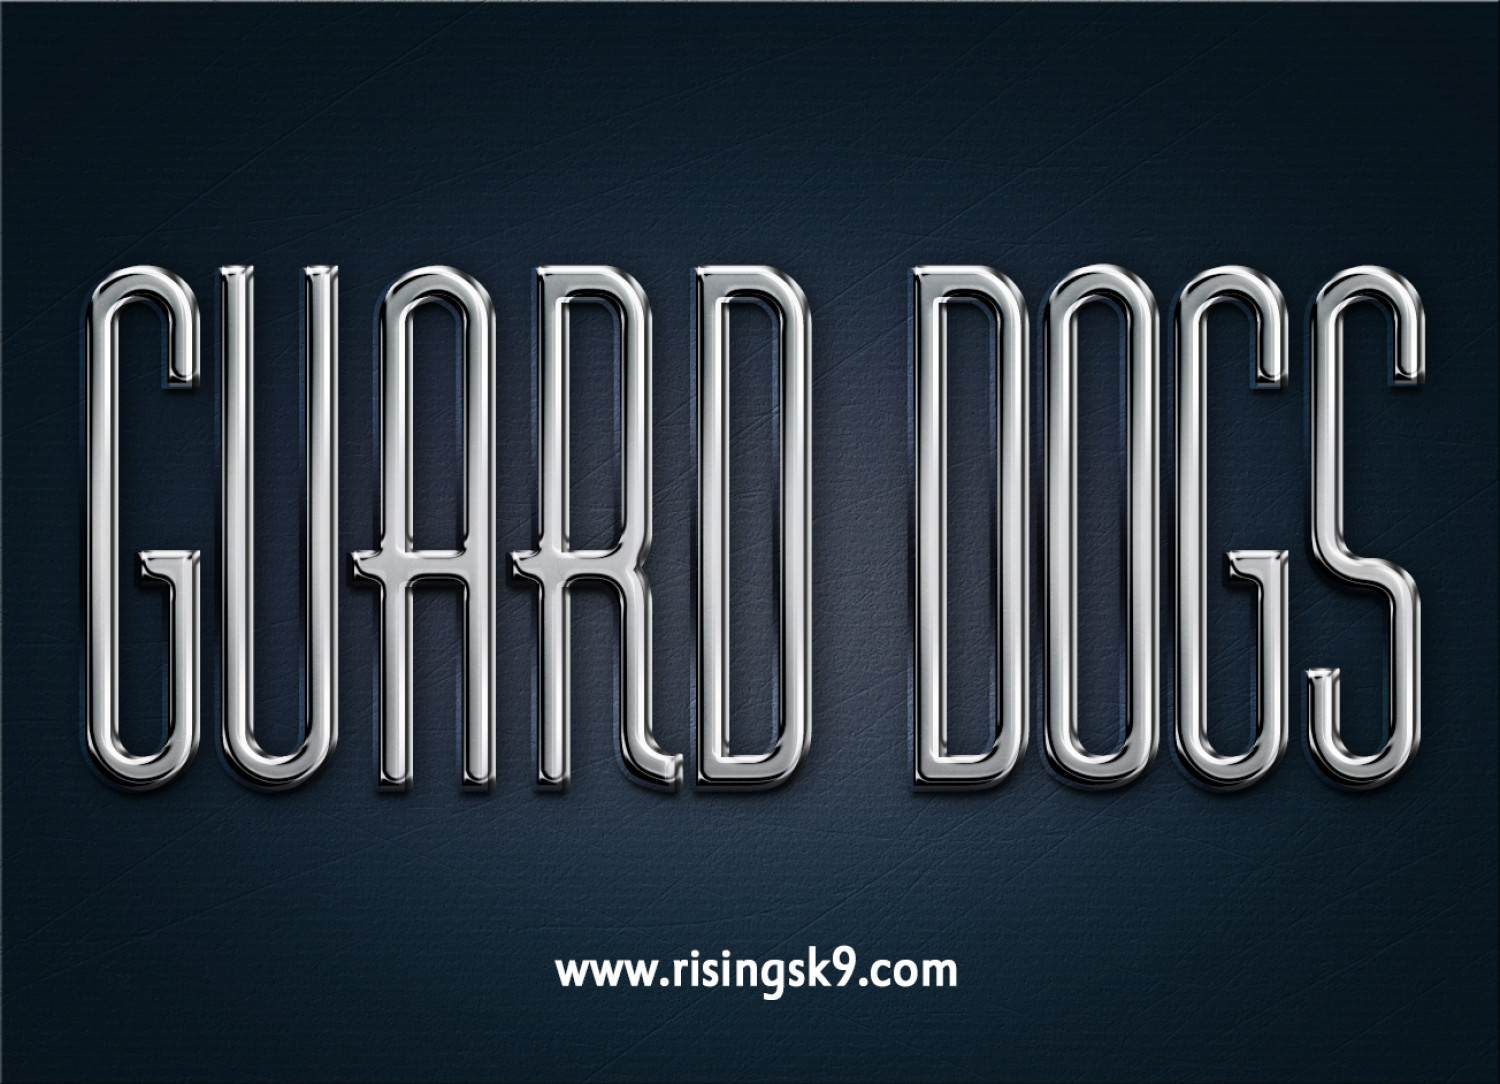 Trained Protection Dogs For Sale Infographic